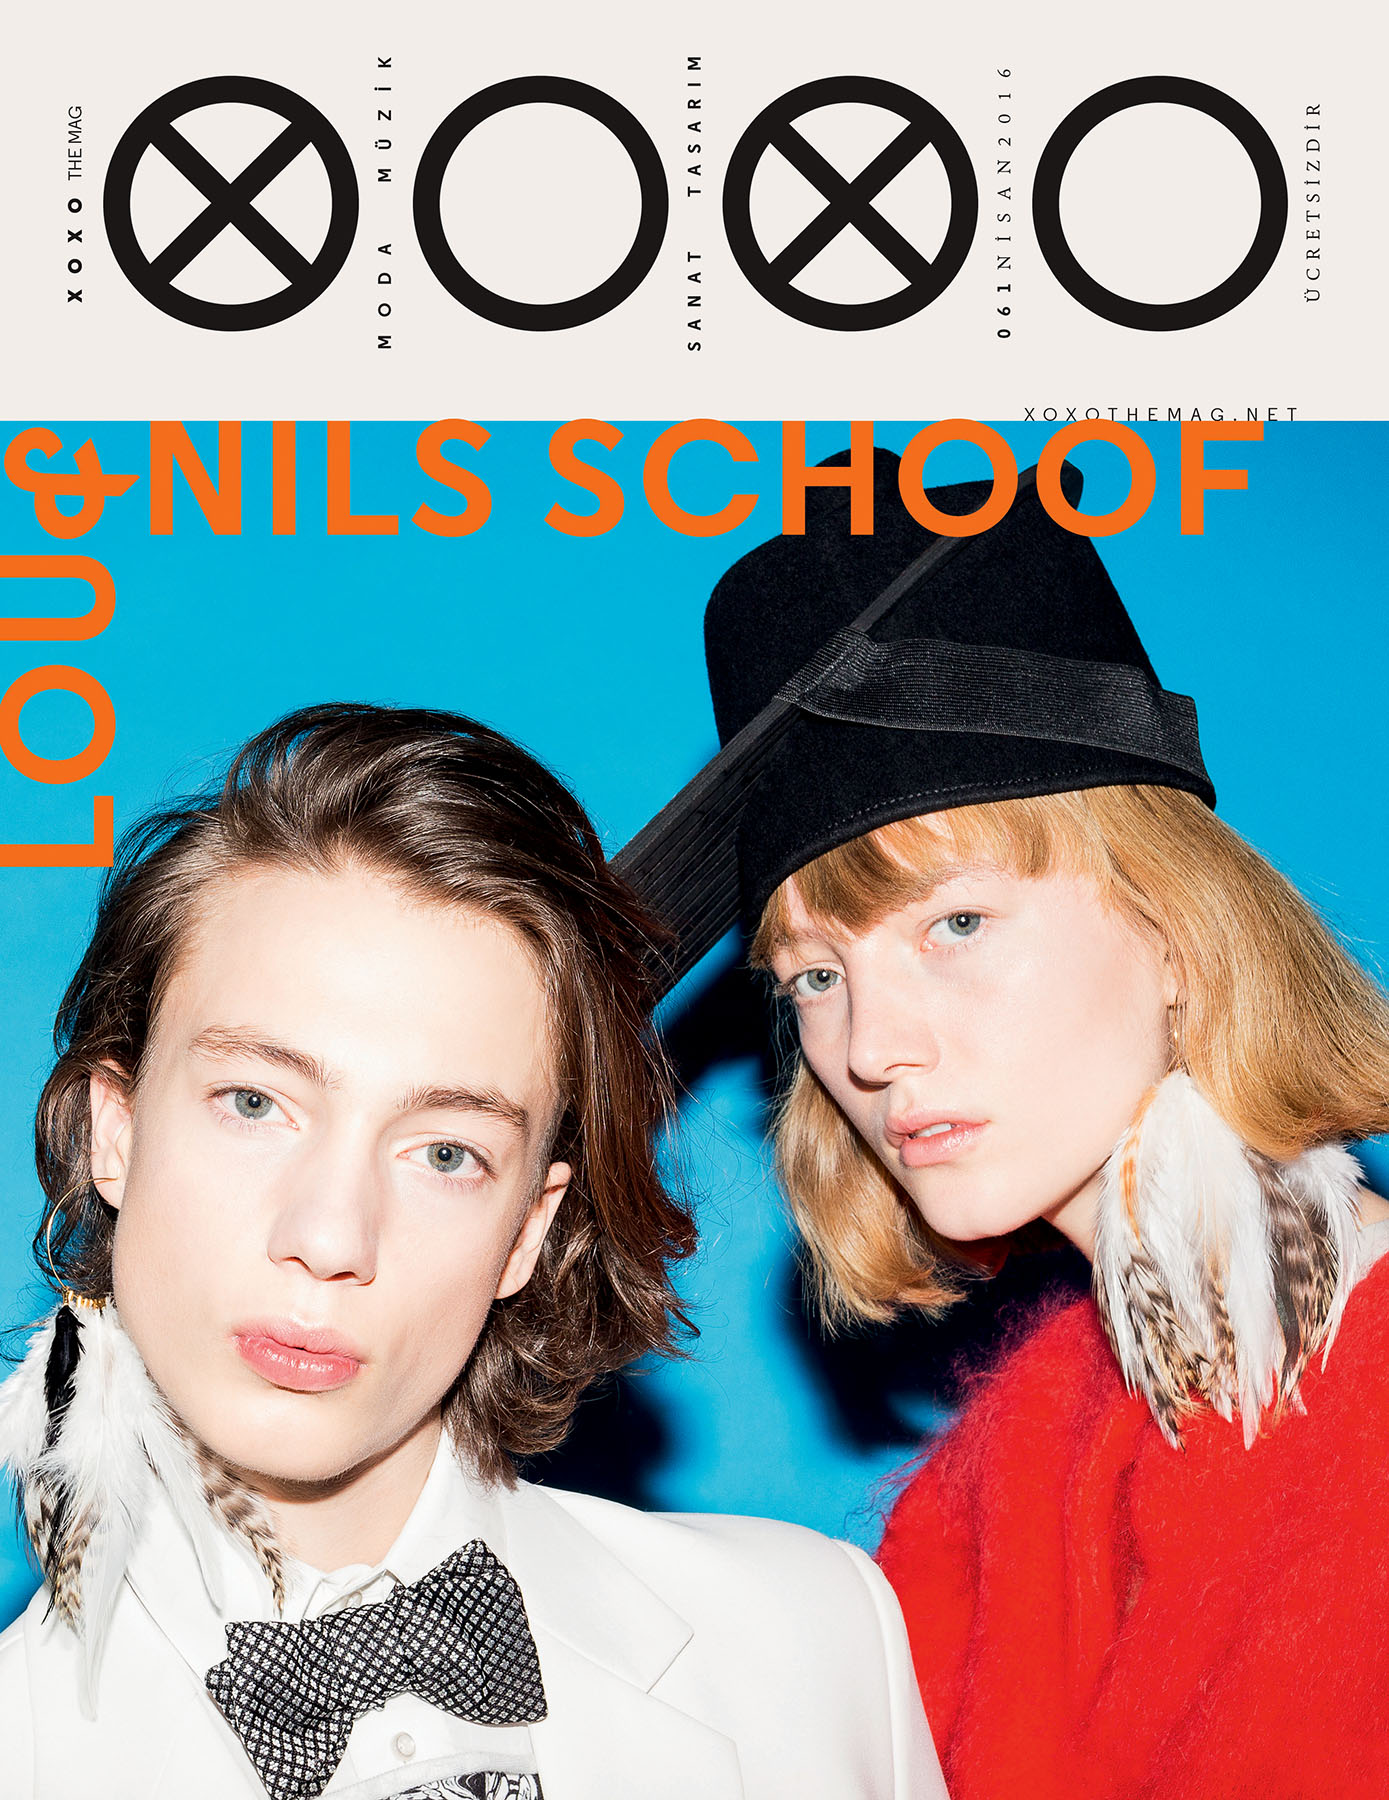 Cover, Lou and Nils Schoof, XOXO Magazin